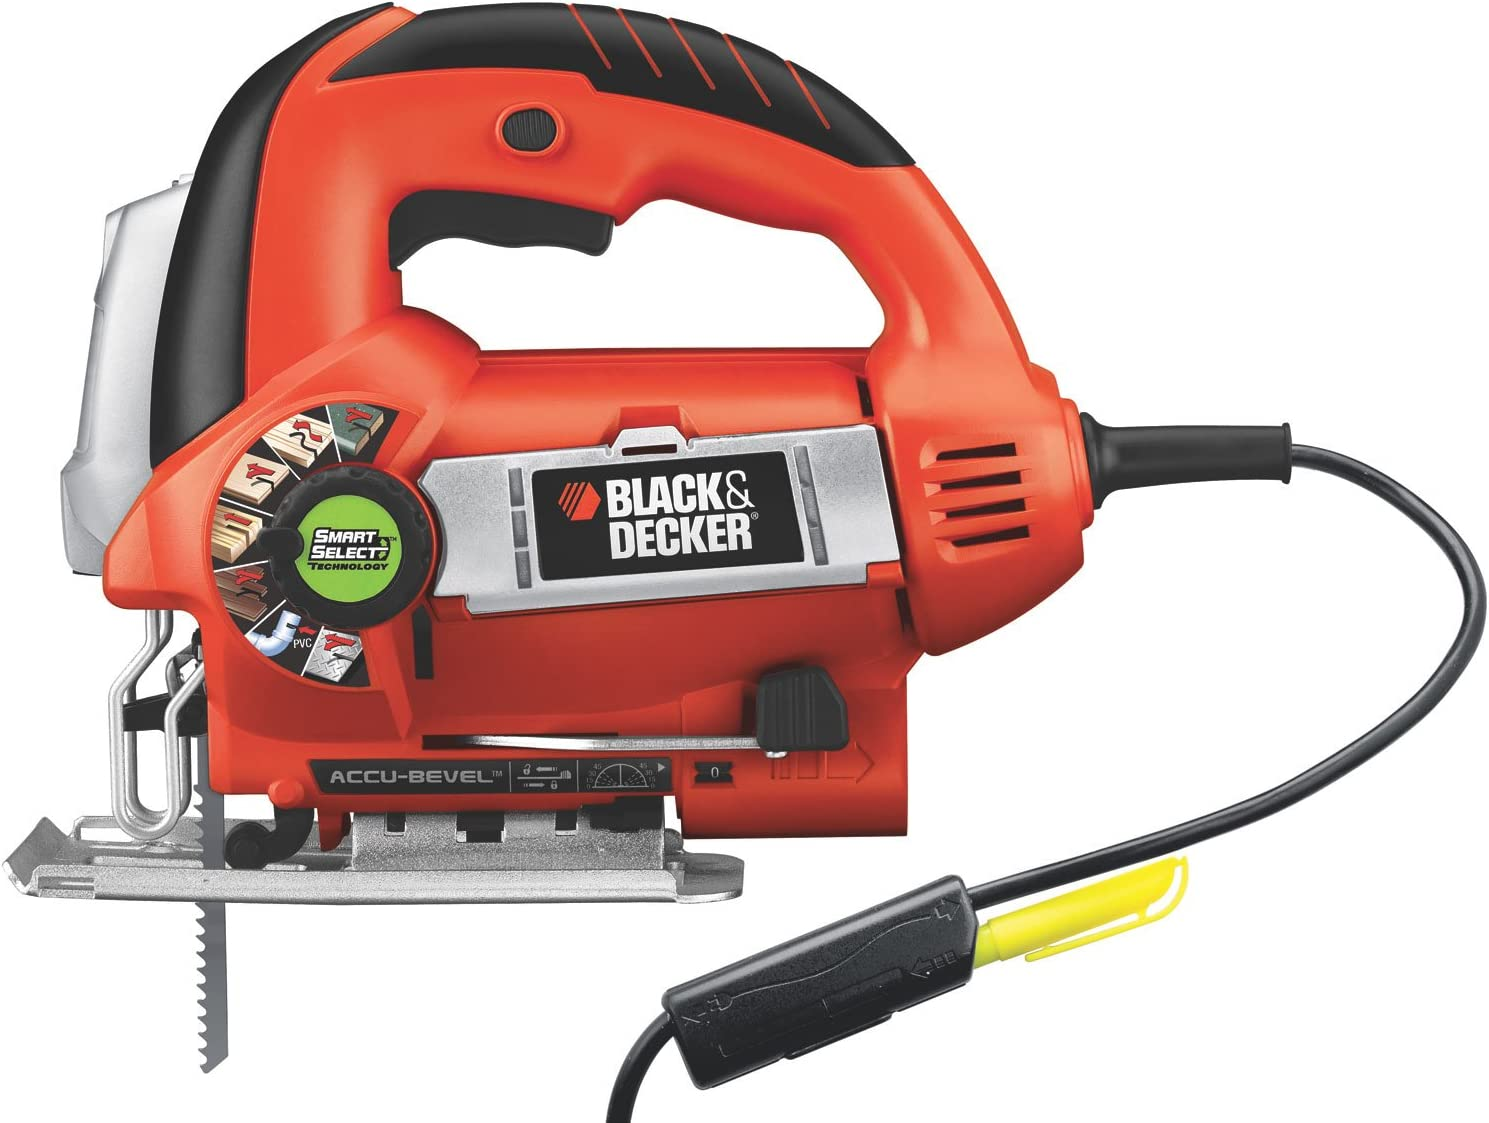 BLACK DECKER Jig Saw, 6.0-Amp JS670V